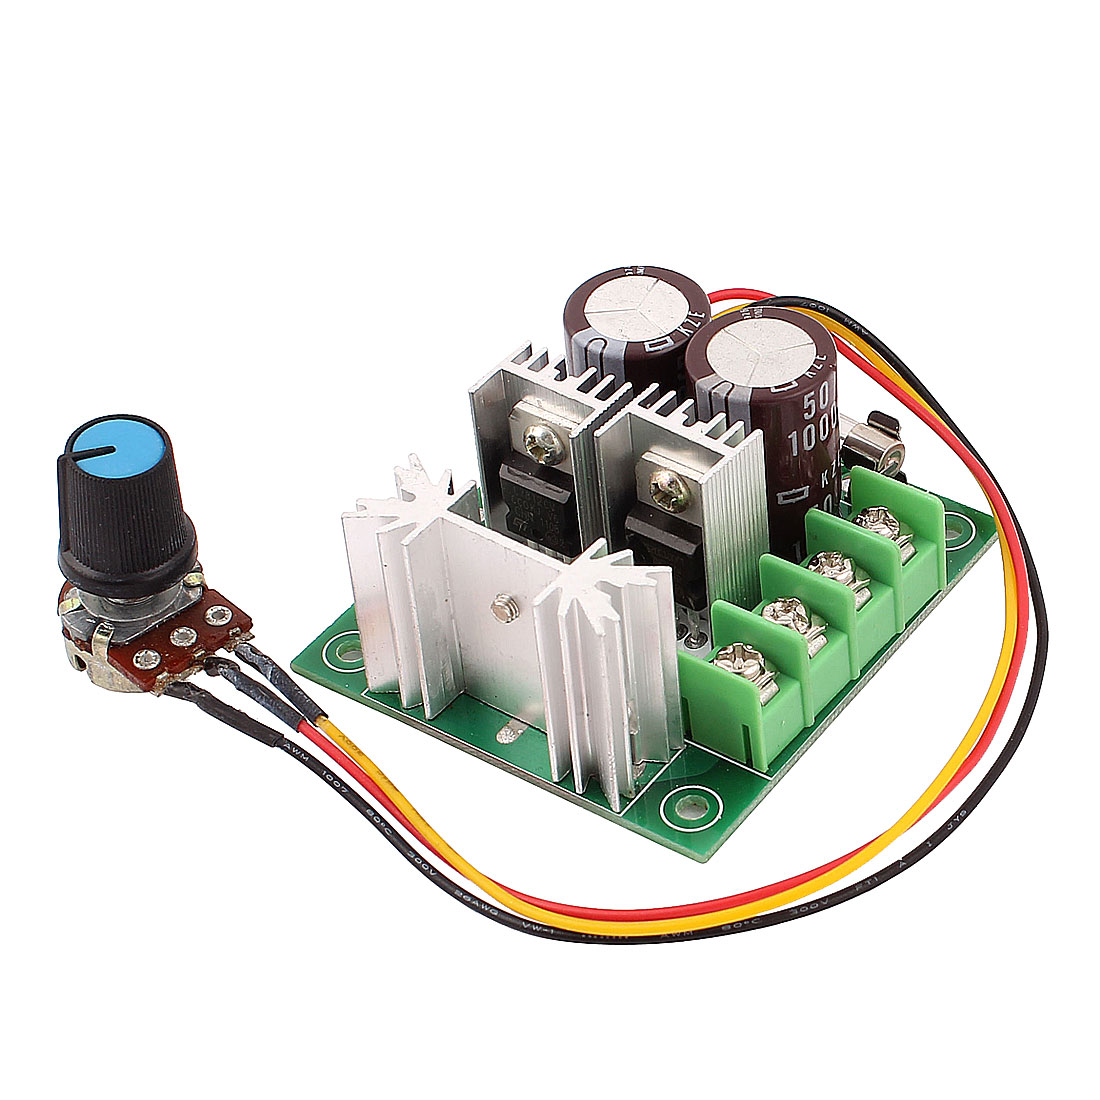 12V-30V 10A 120W PWM Adjustable DC Motor Speed Control Switch Controller